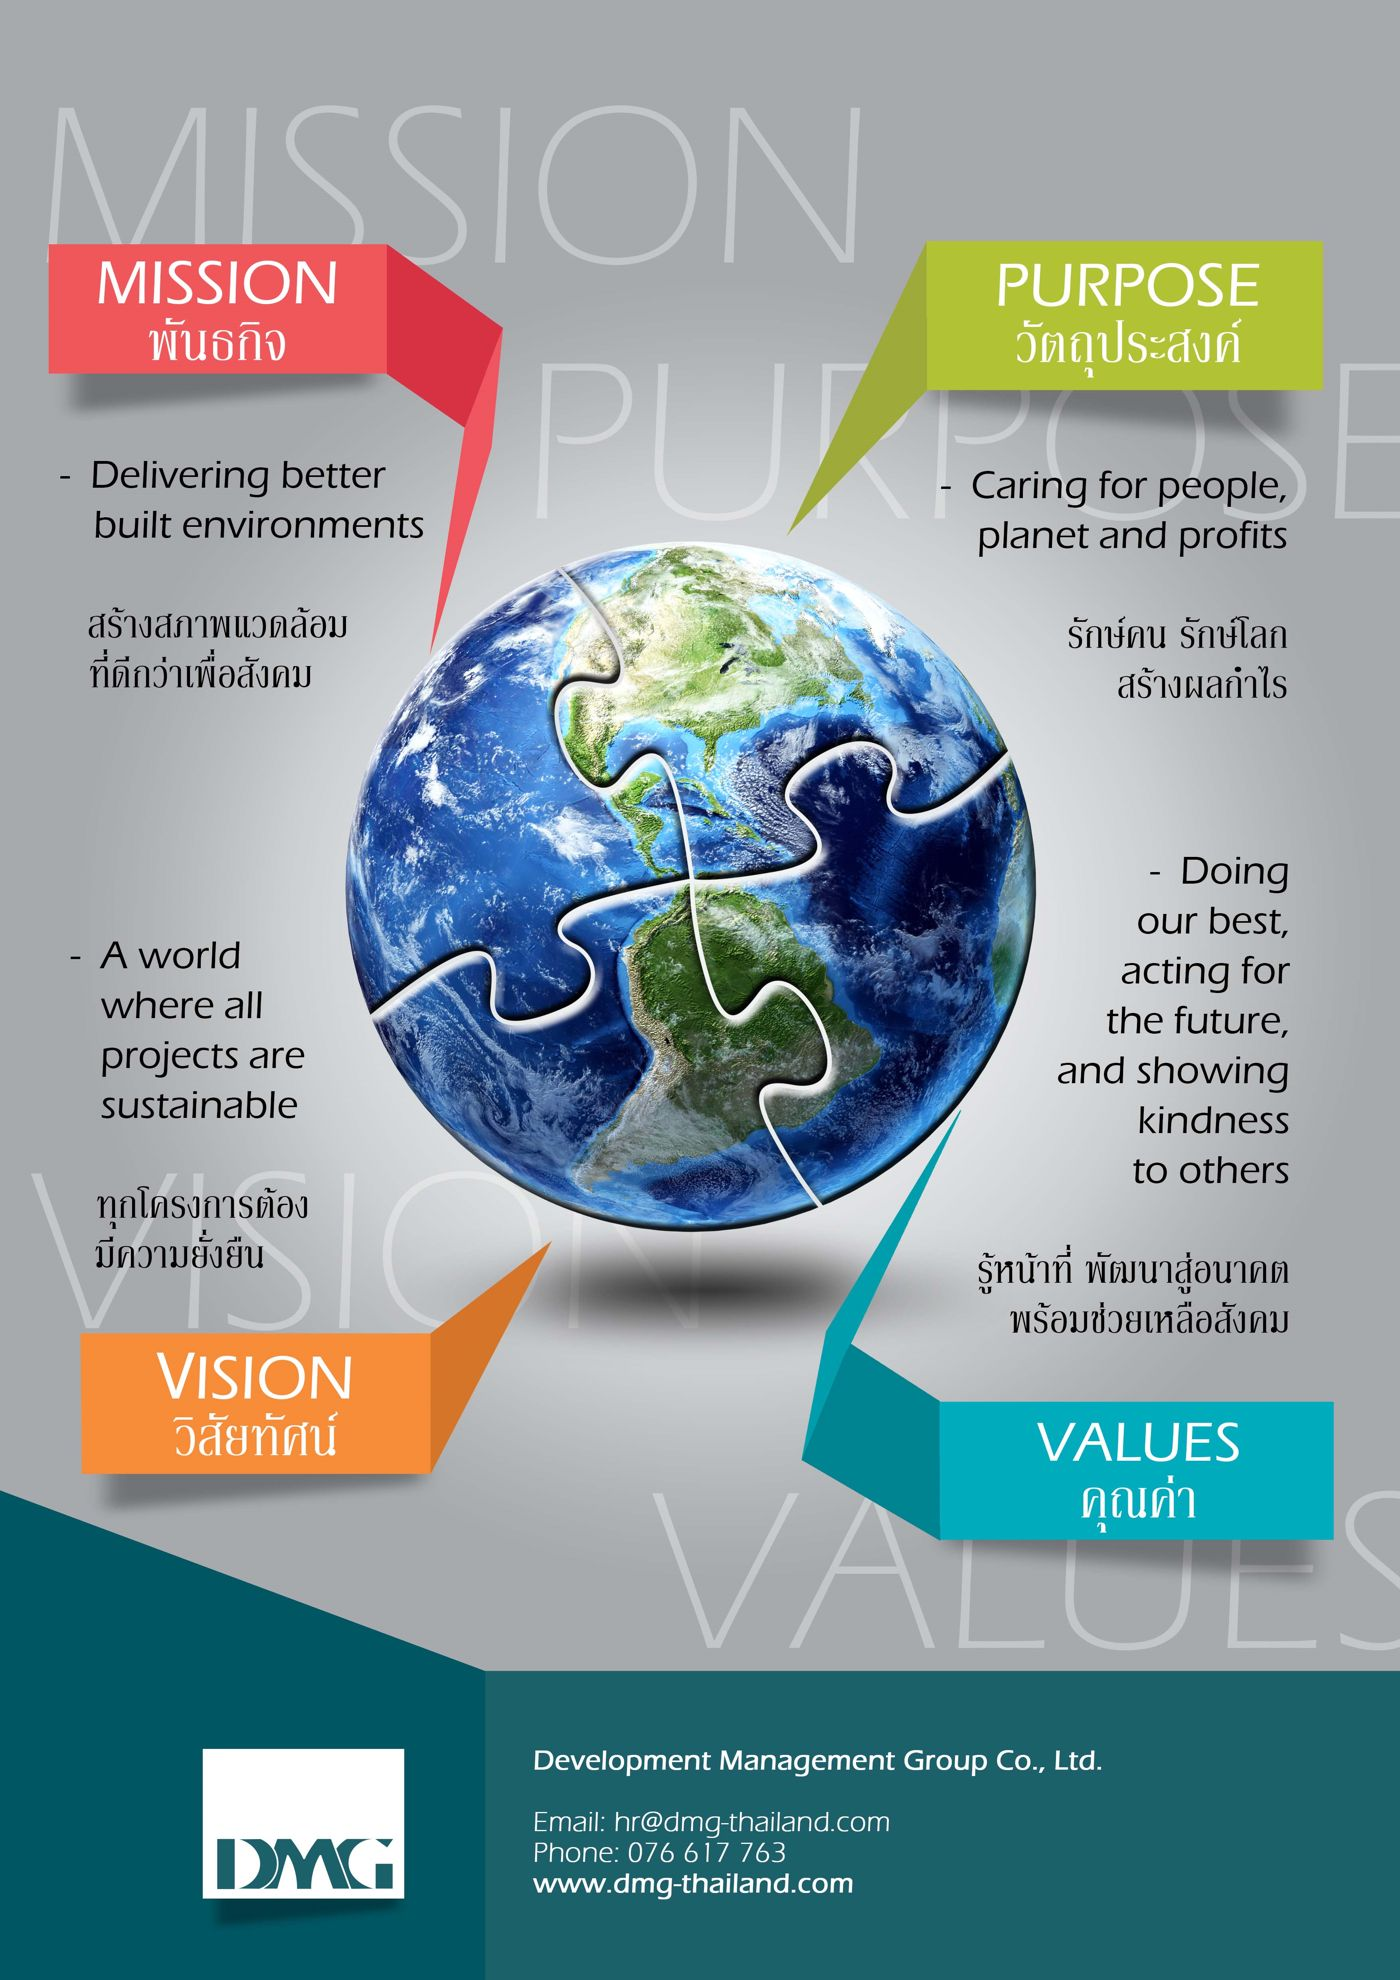 Our Mission, Vision, Purpose and Values for Construction Management